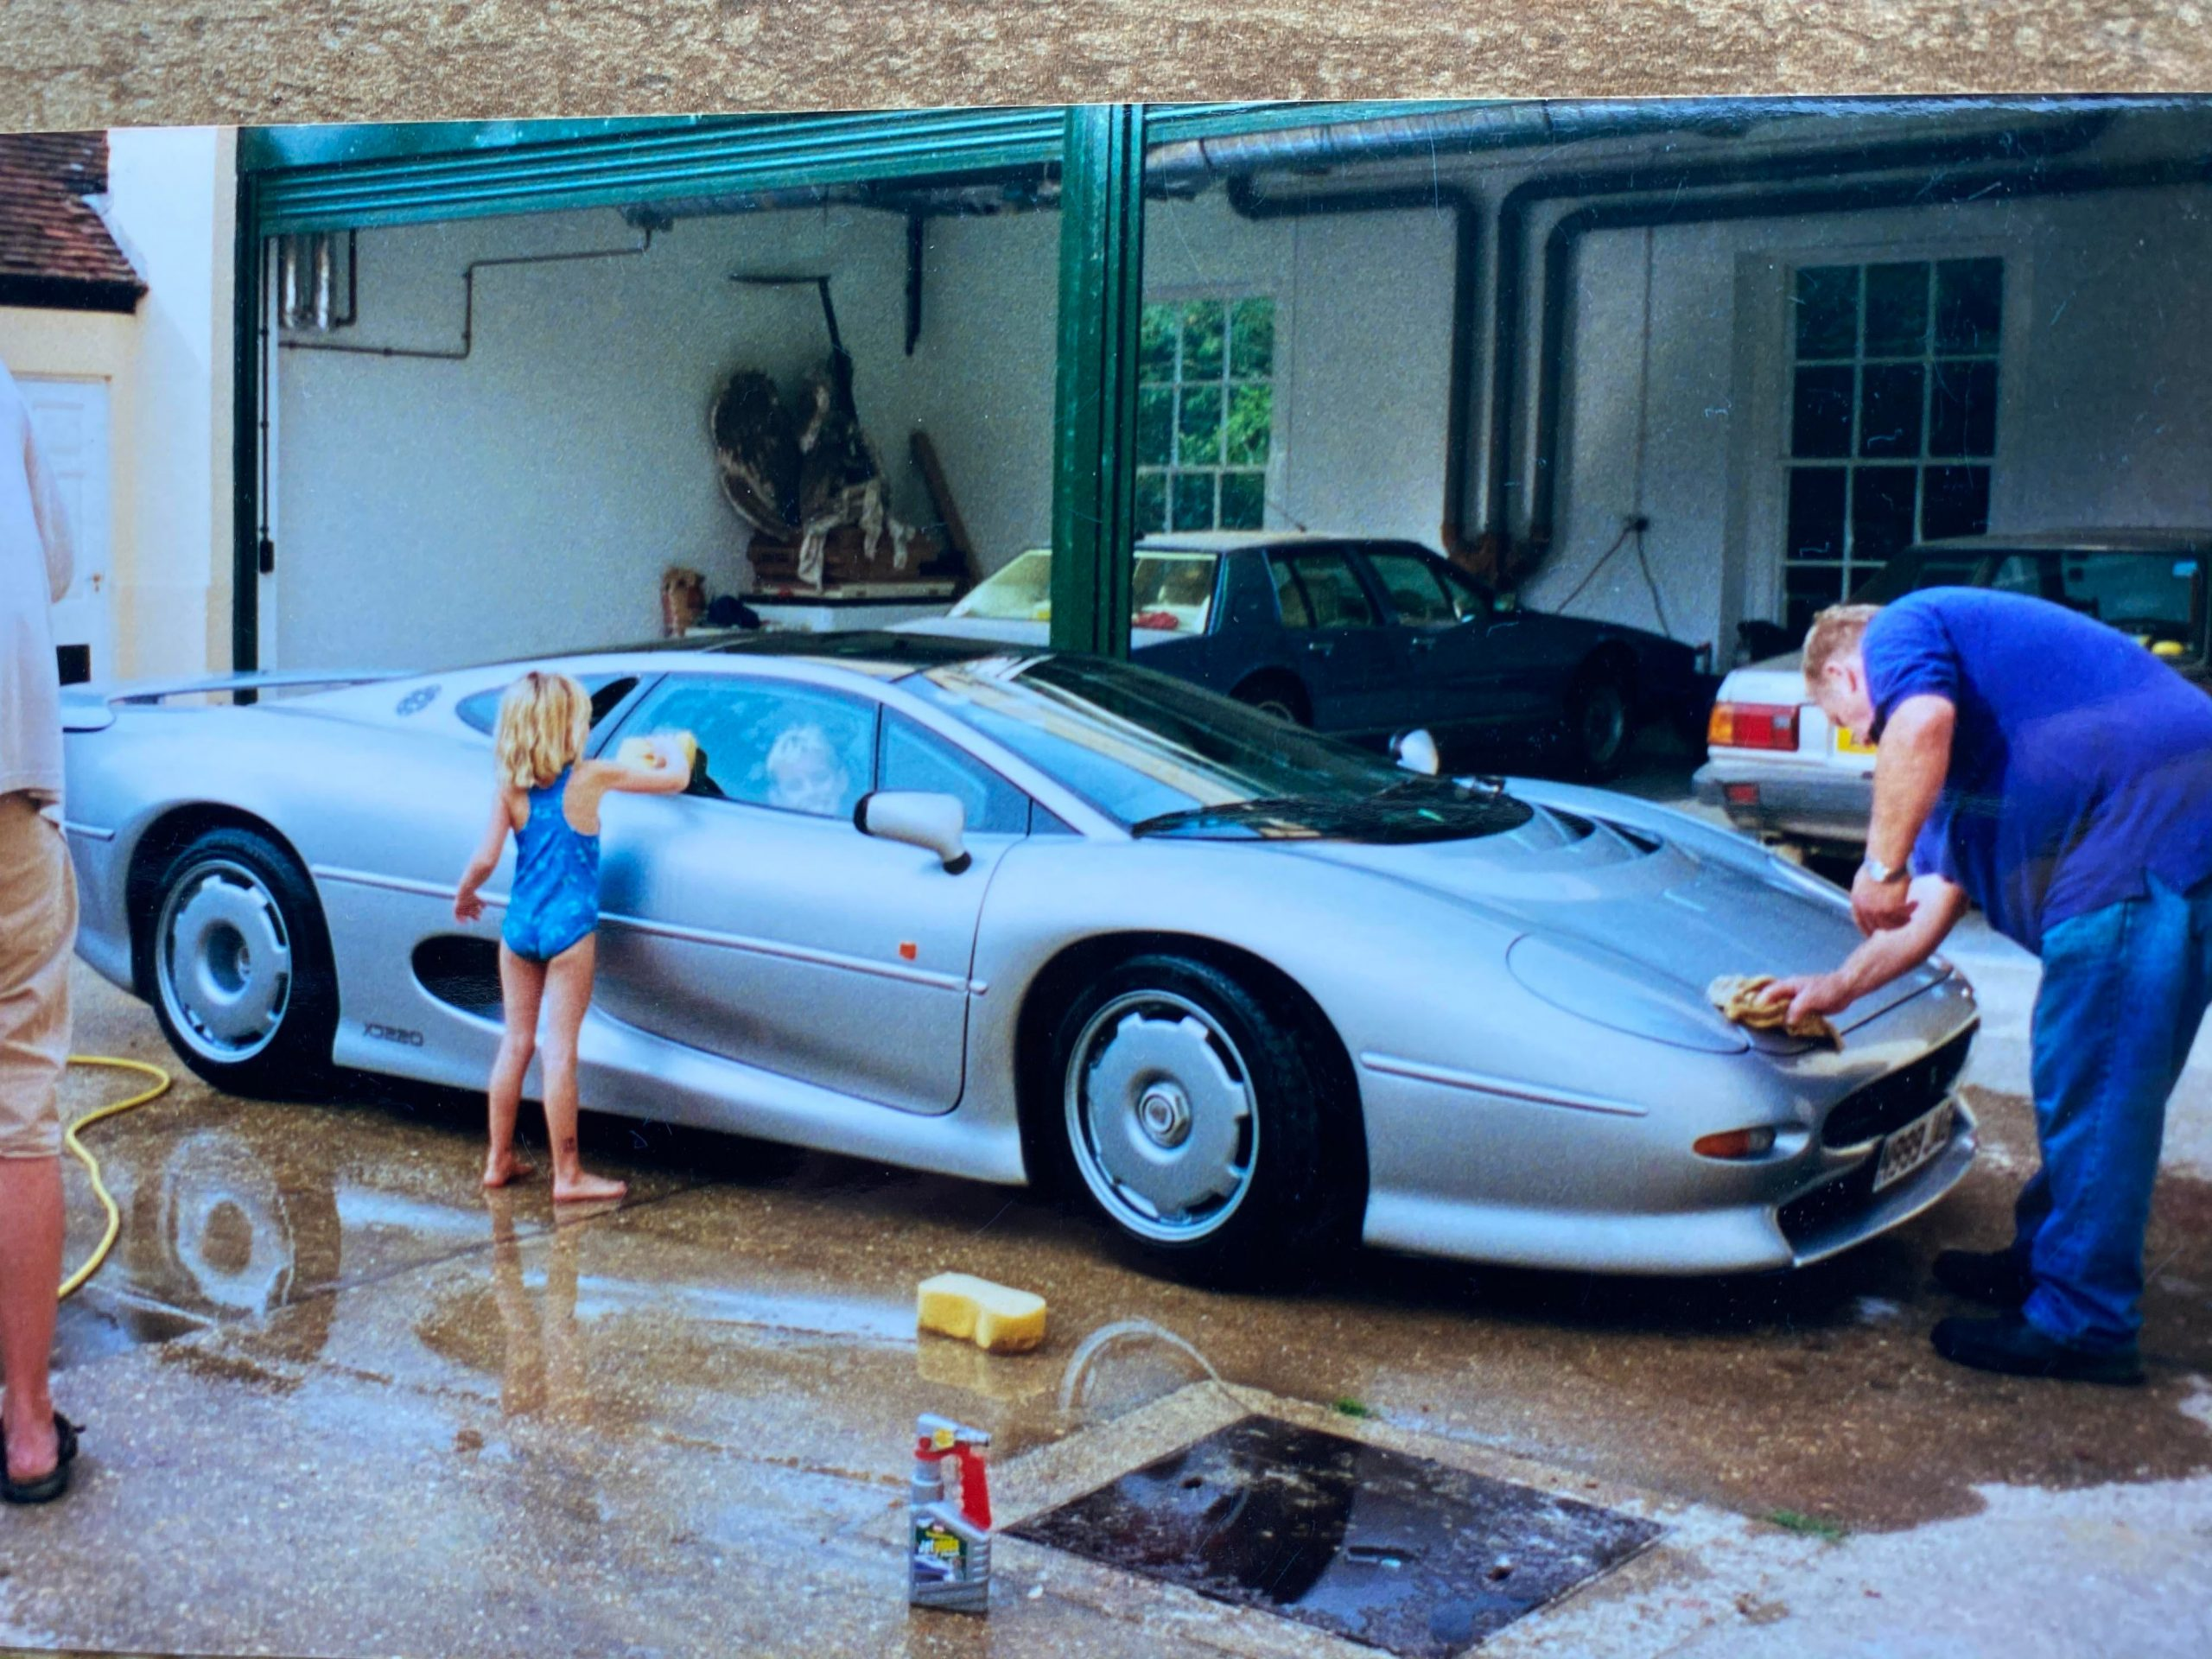 Me when I was 6 behind the wheel of XJ 220, gettin a wash. Circa 2000